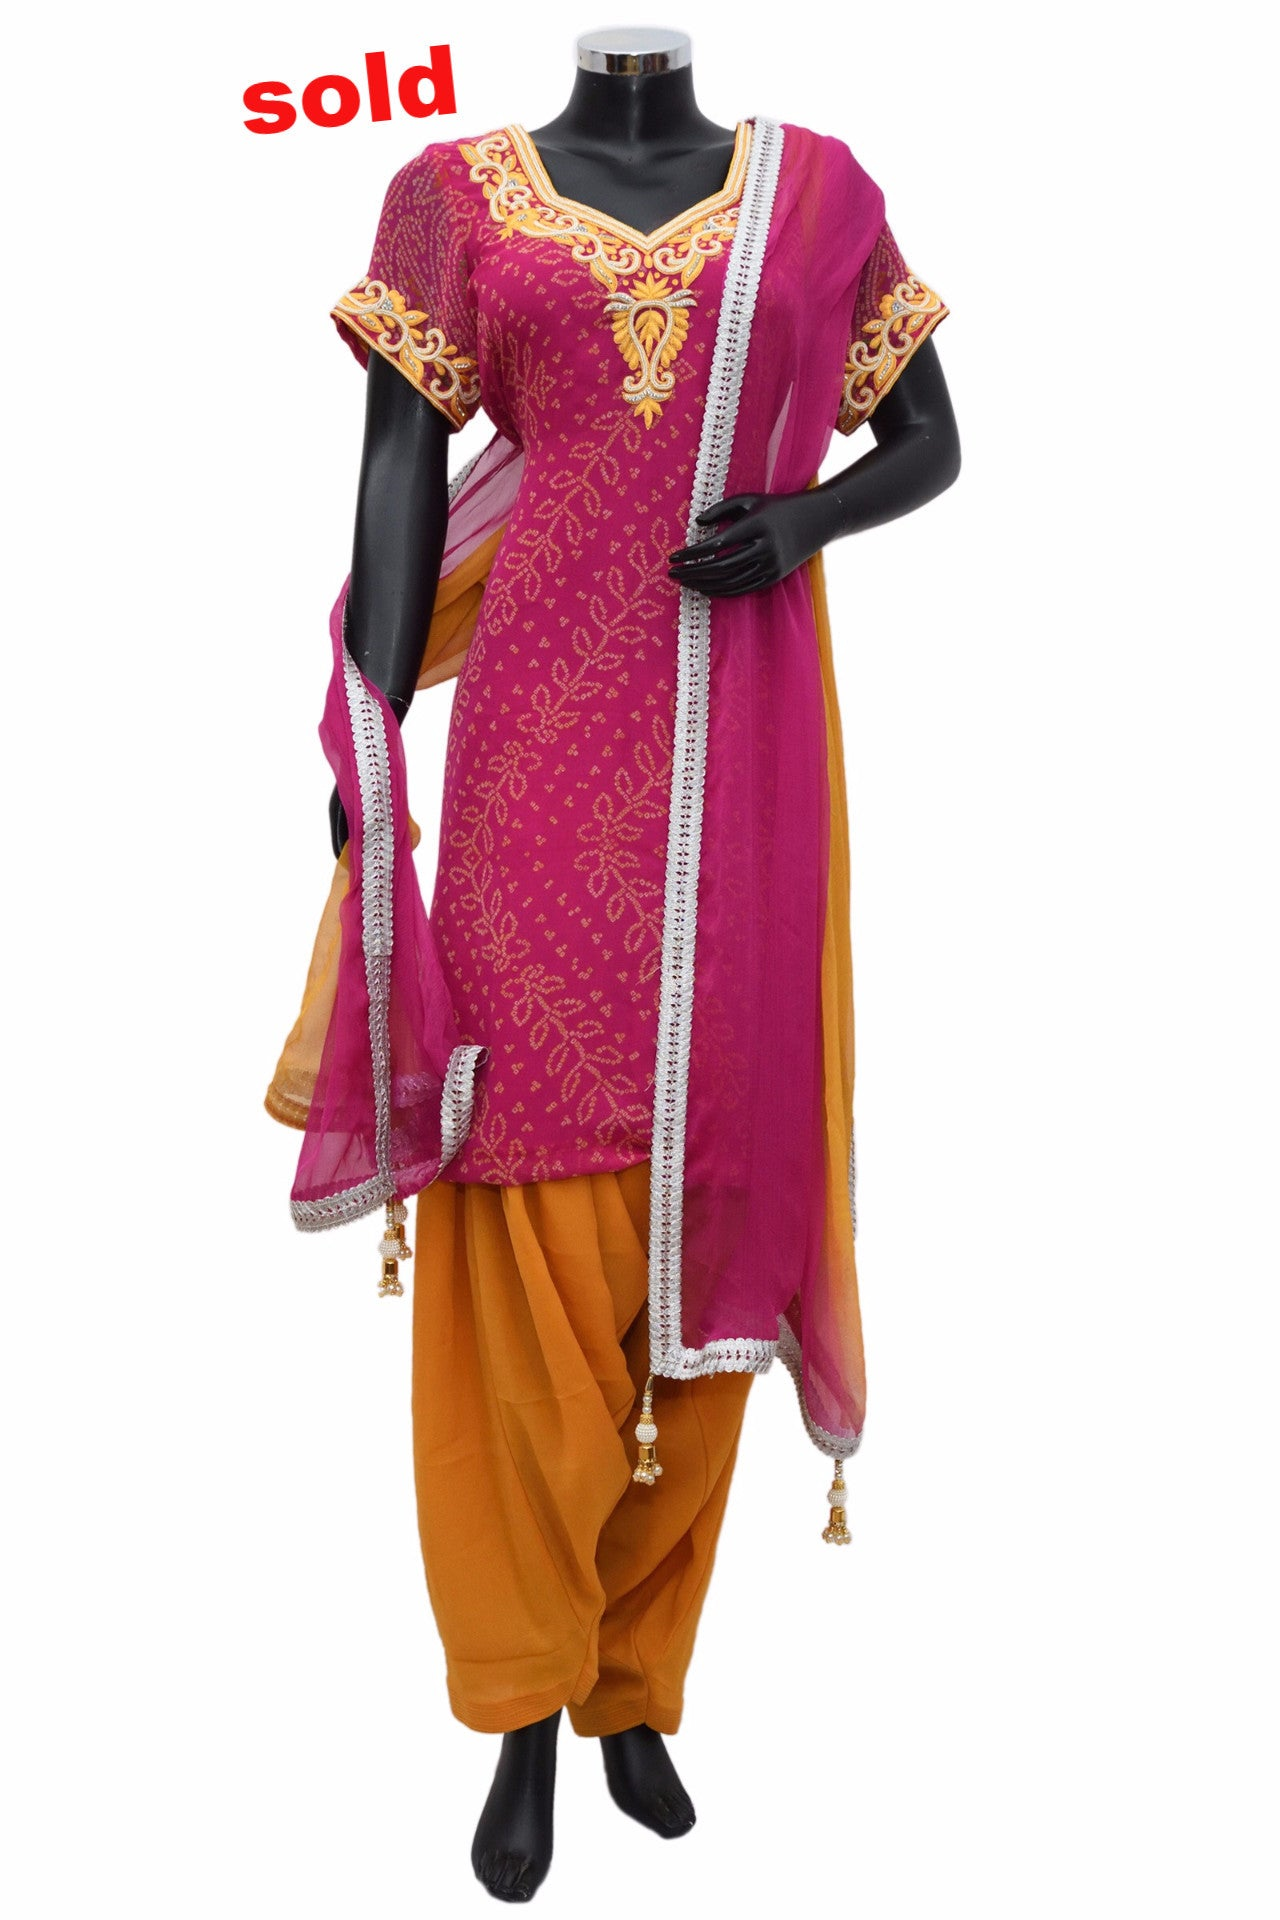 Bahendaj textured patiala in pink and mustard #fdn0463